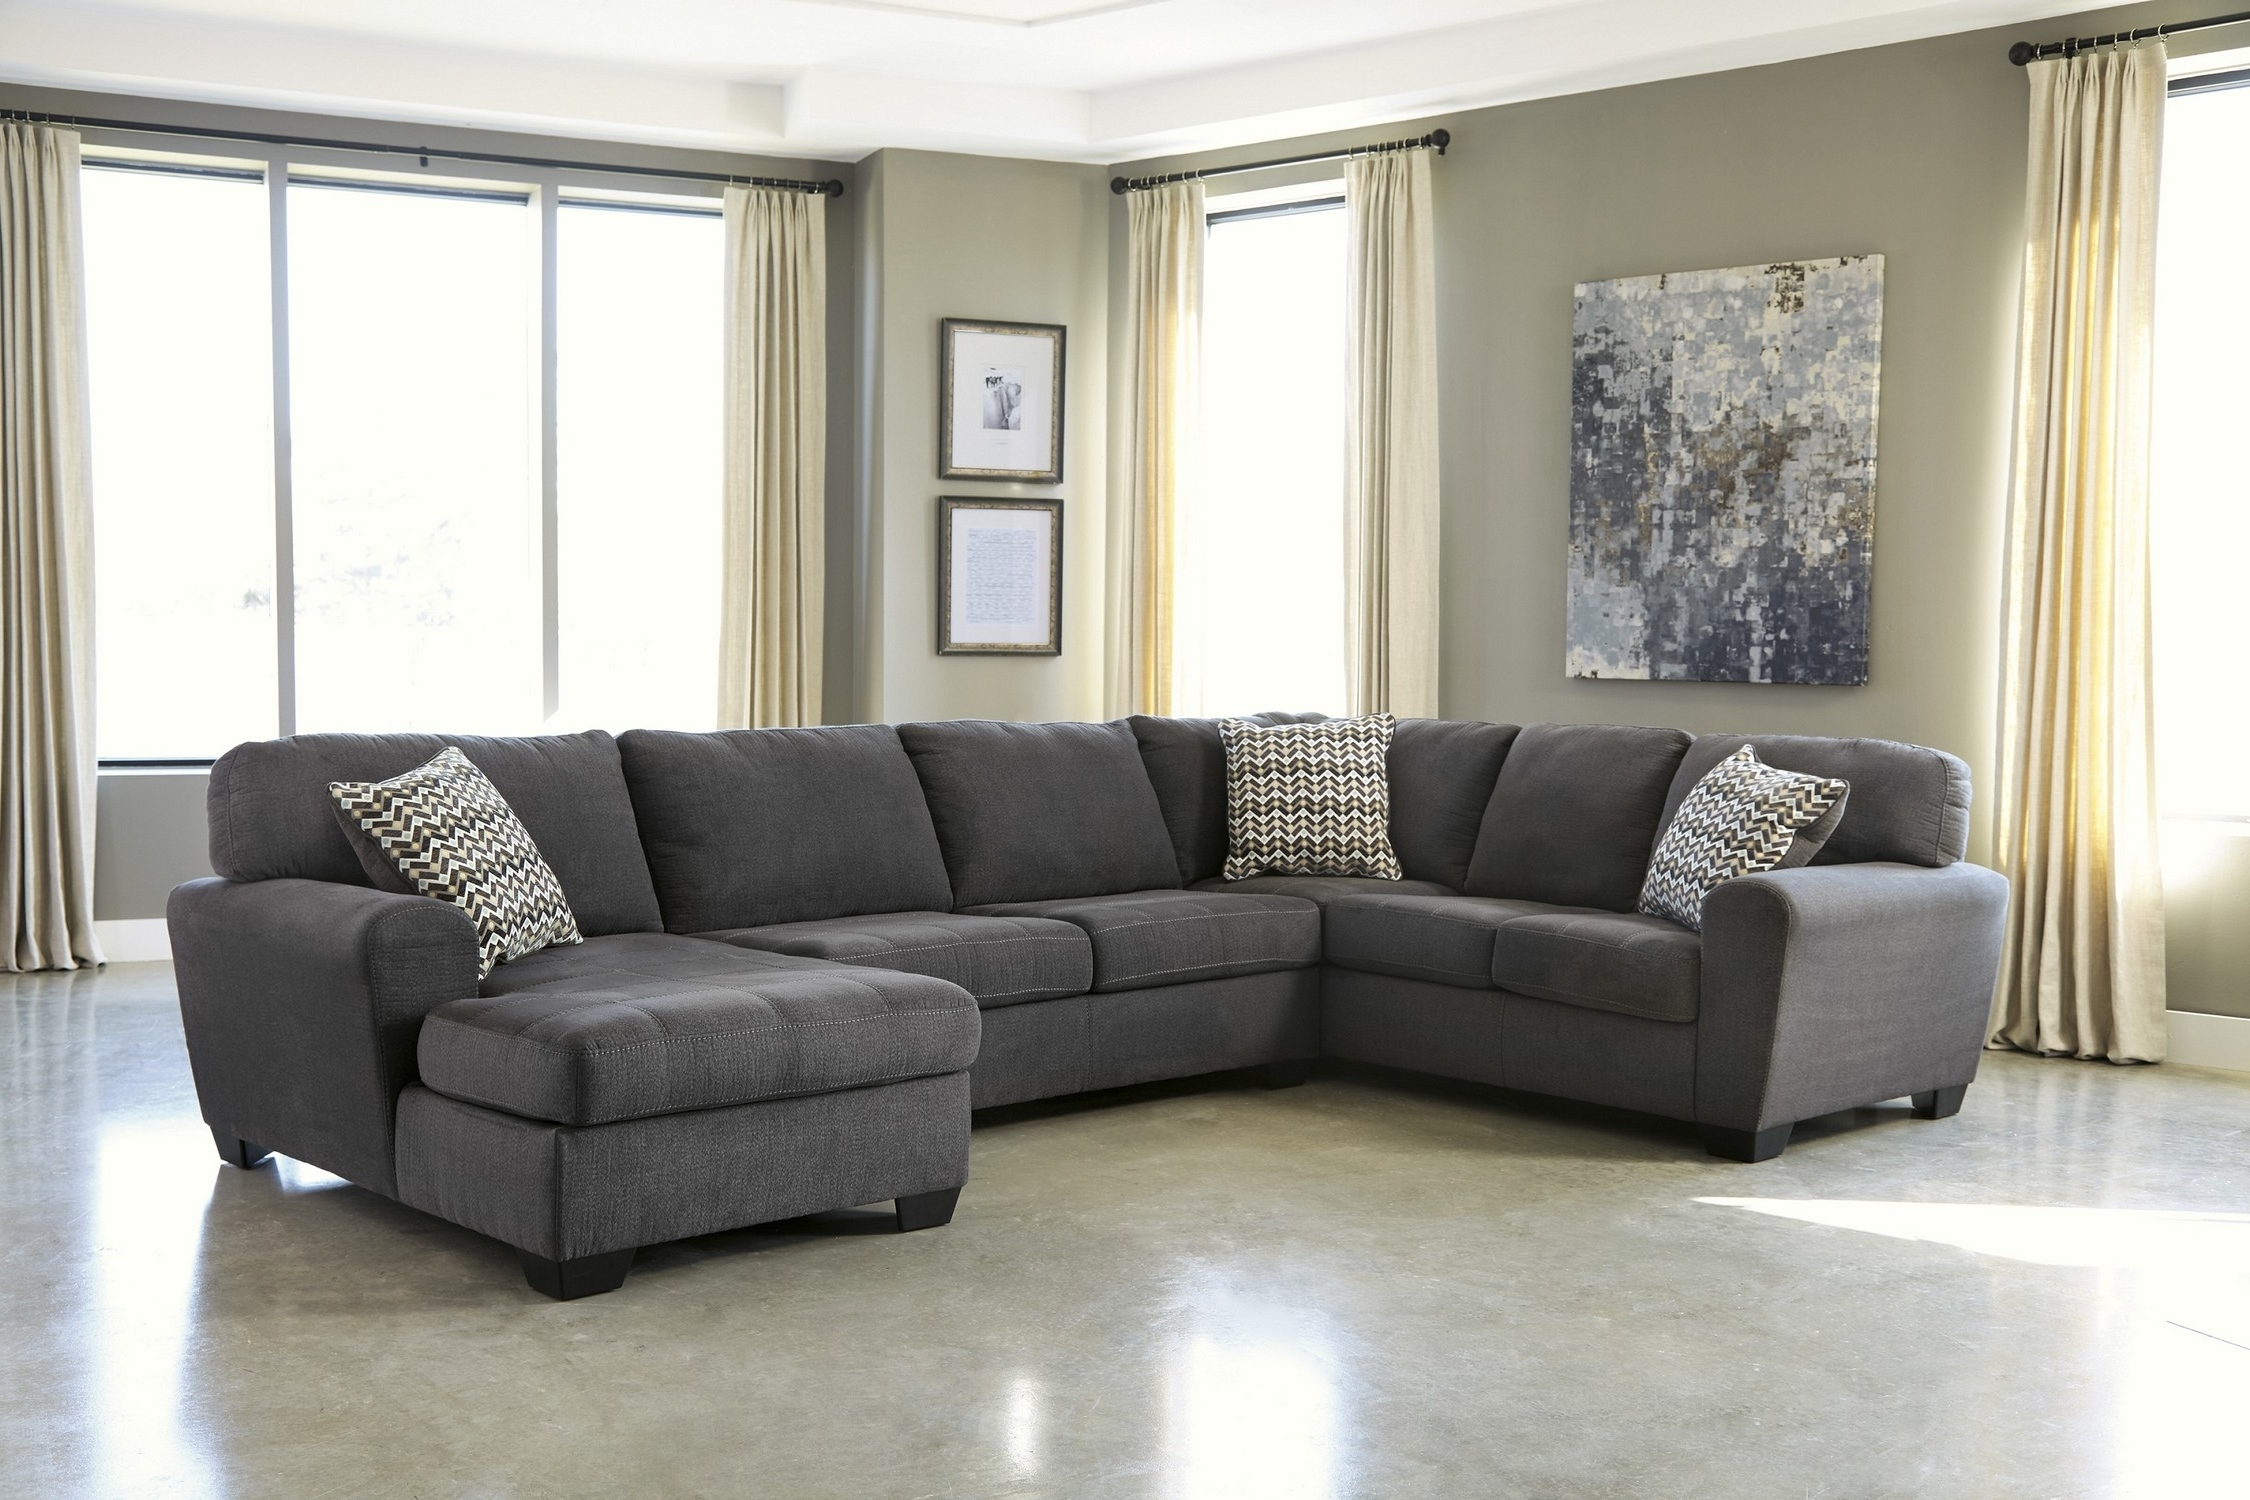 Popular Sectional Sofas Under 1500 Pertaining To Luxury Charcoal Sectional Sofa 52 On Office Sofa Ideas With (View 8 of 15)